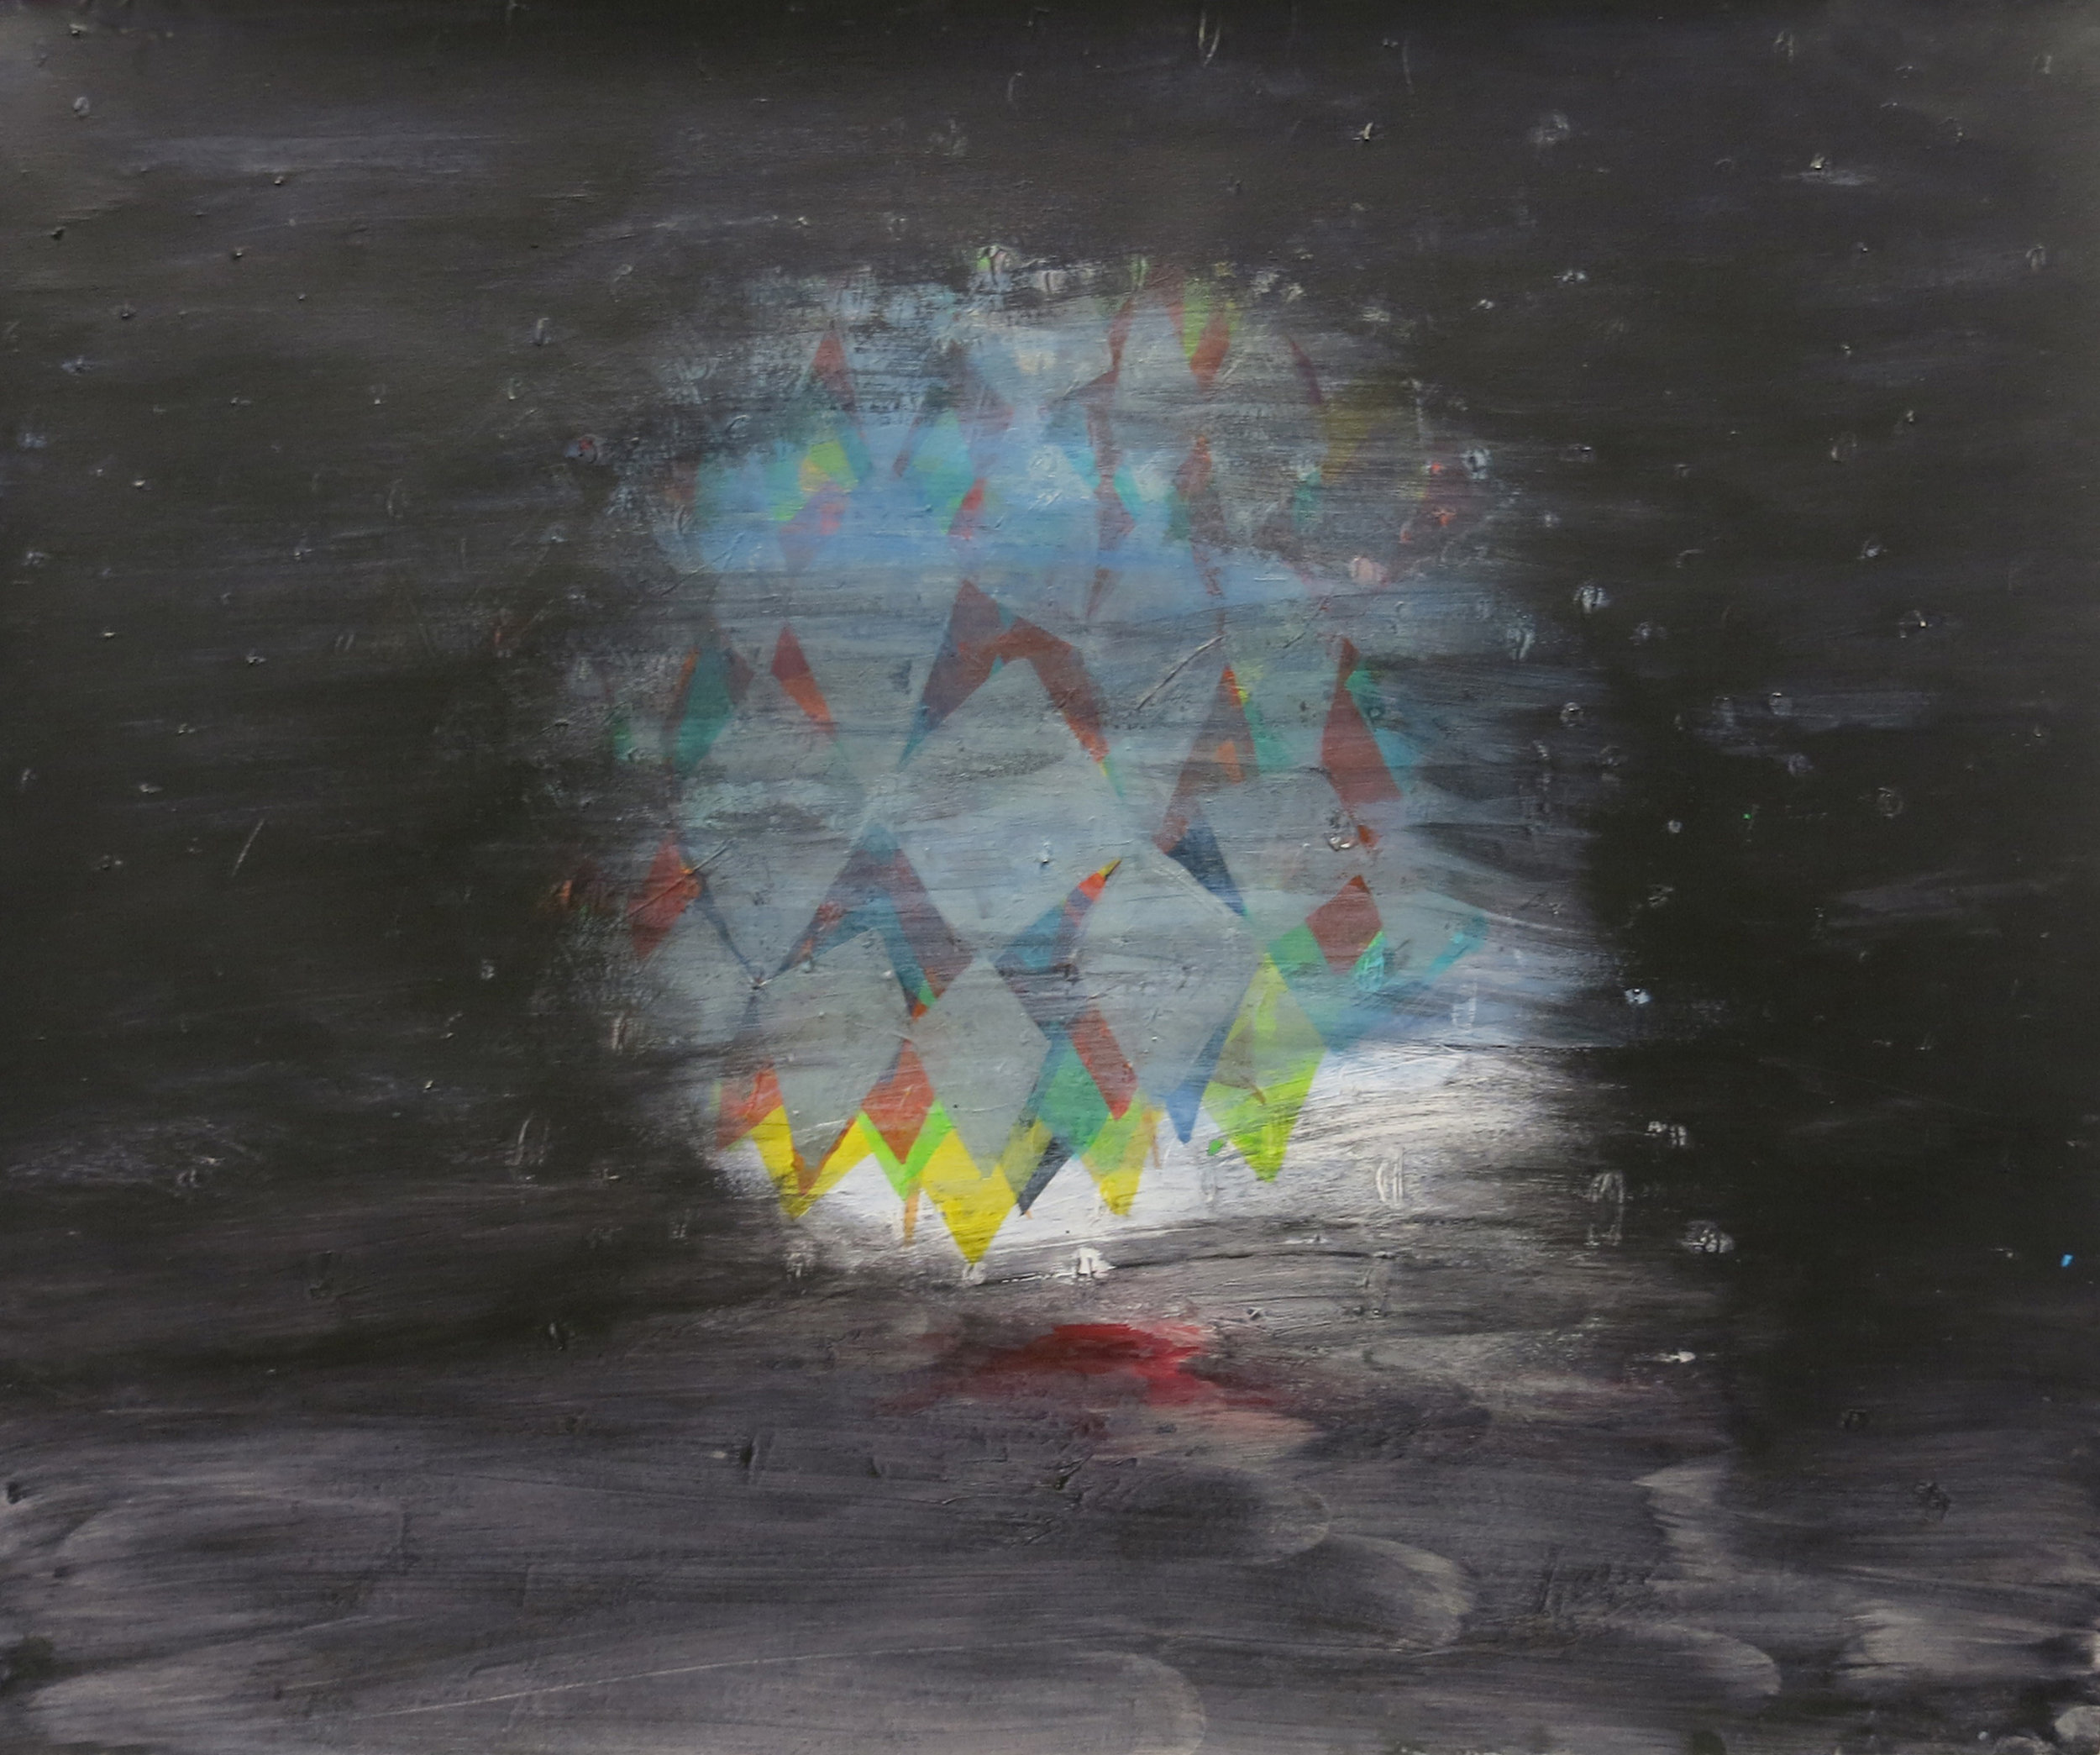 Sarah Gamble, Untitled, 2012, mixed media on paper,14h x 17w in.